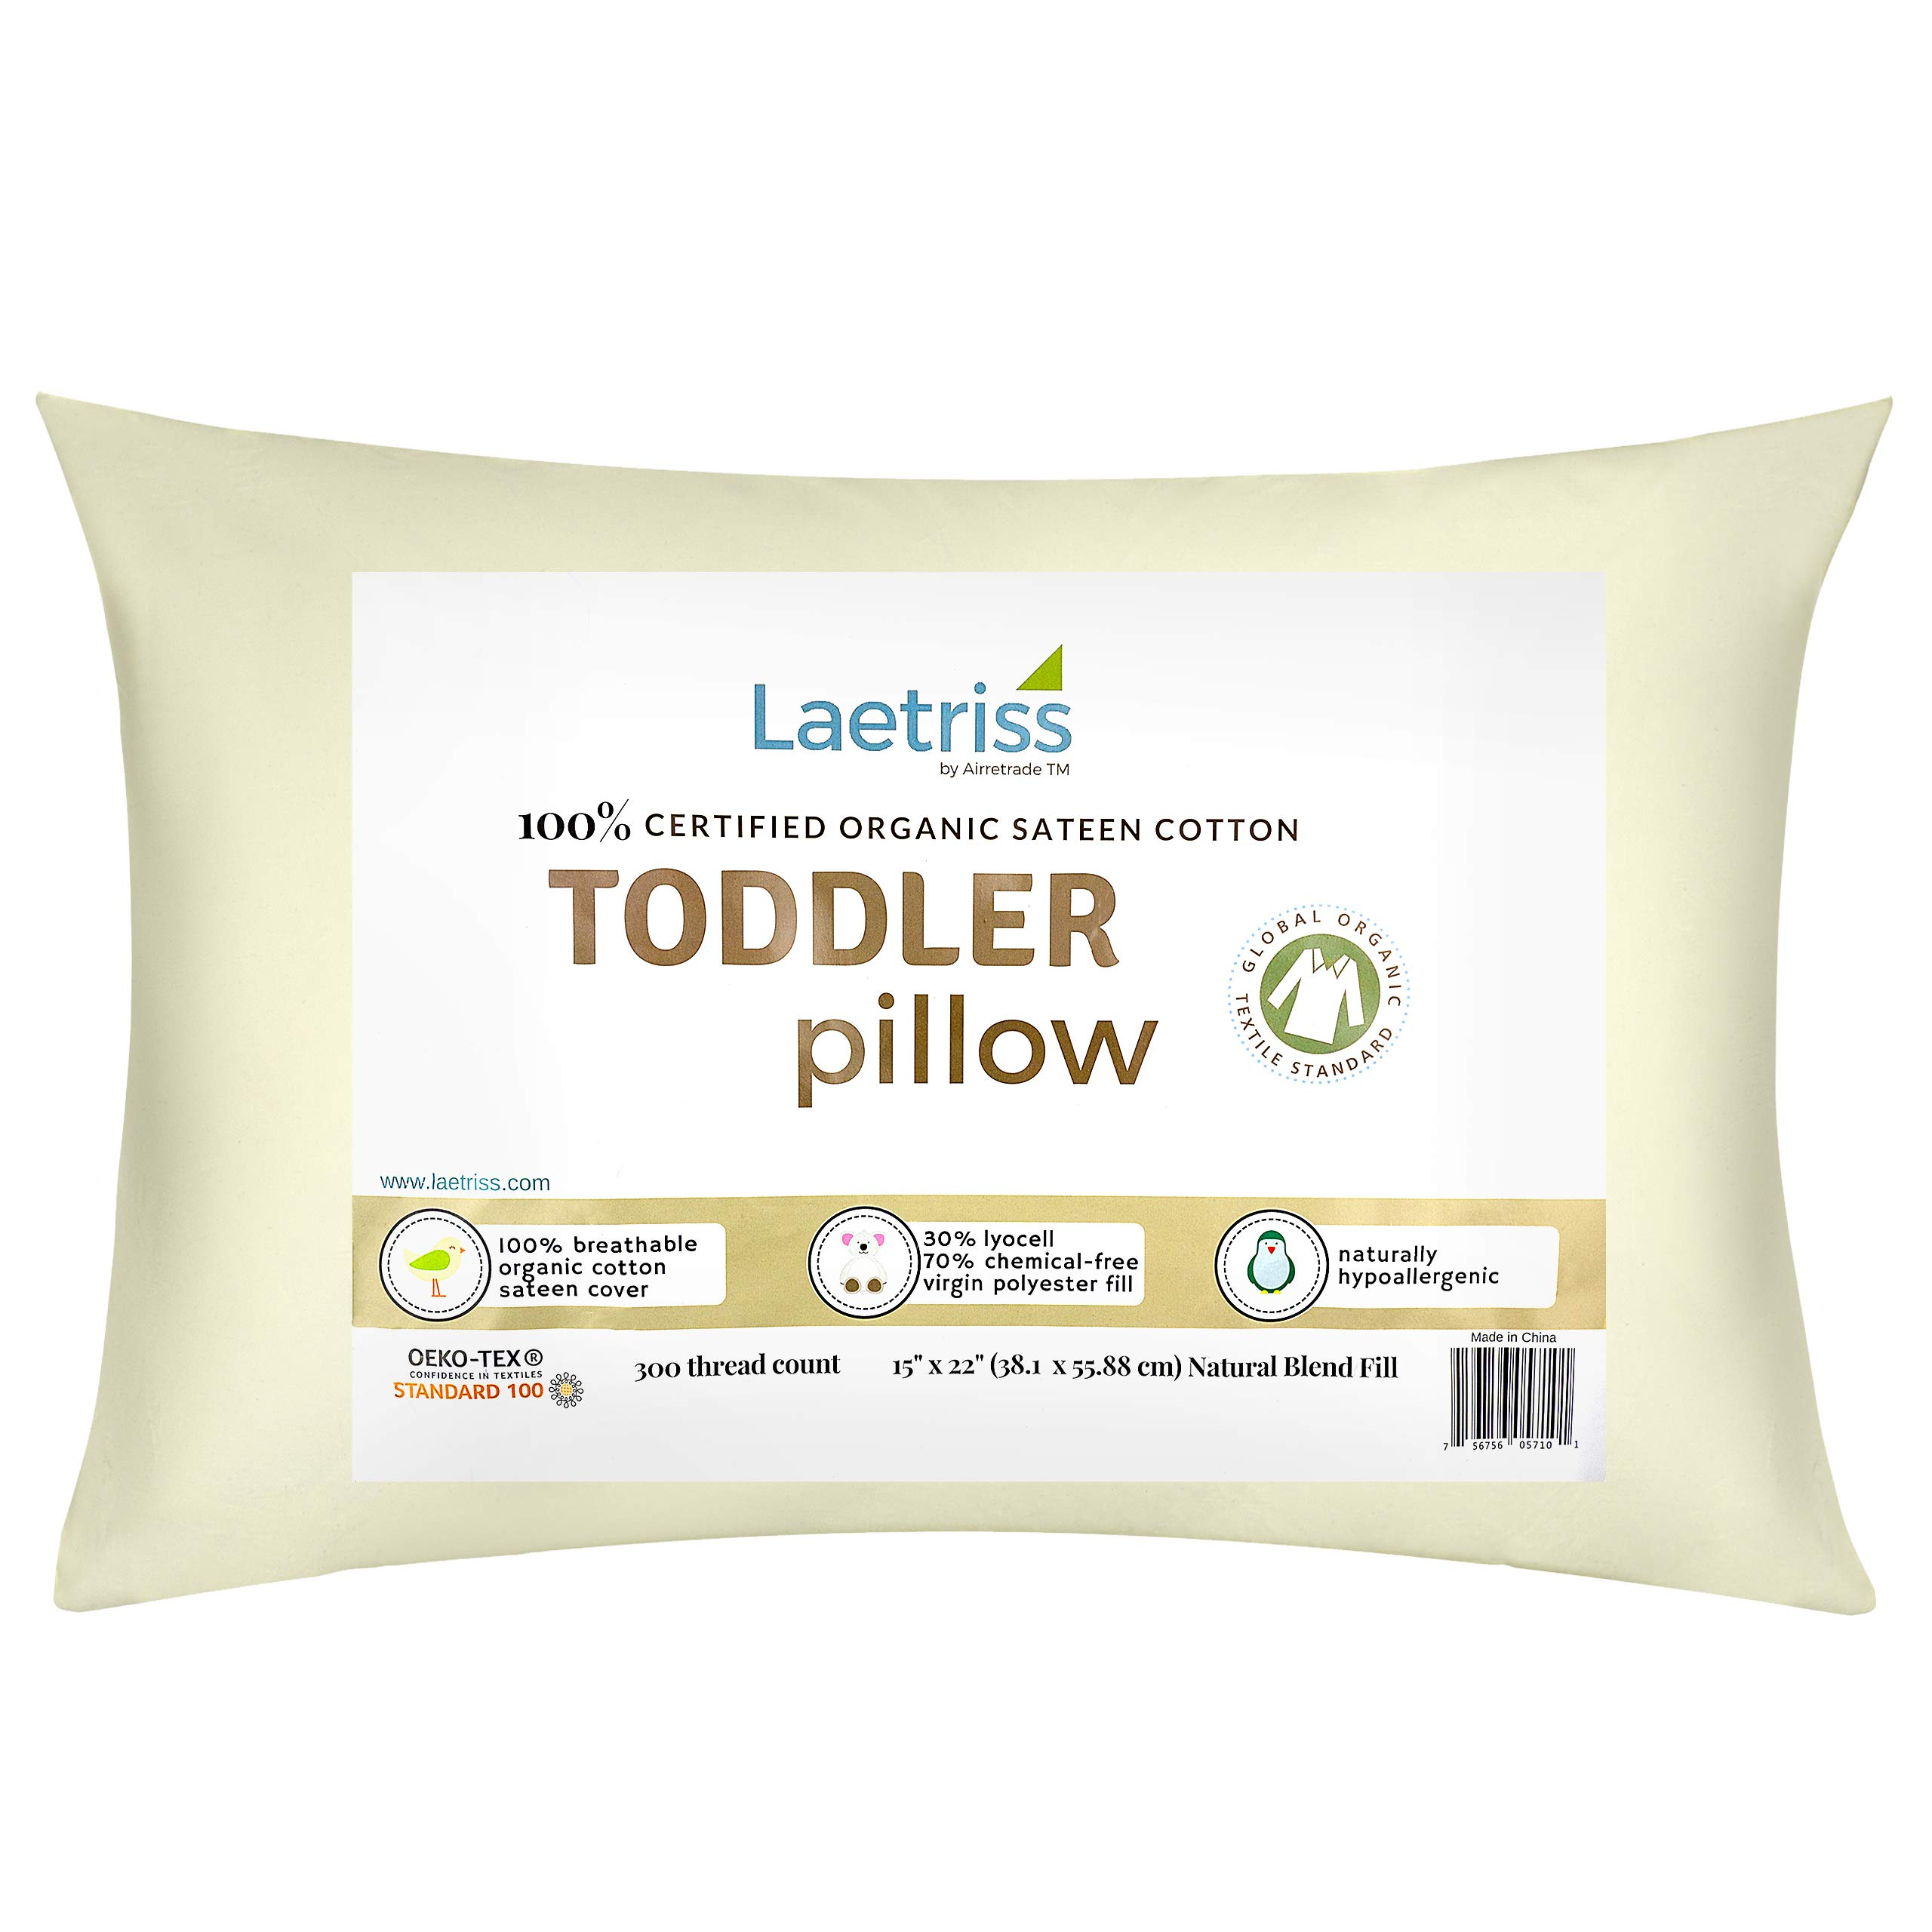 Laetriss Toddler Pillow Organic Cotton with Pillowcase | Hypoallergenic and Soft Baby Pillows and Case for Boy and Girl Toddlers | Small Child's Sleeping Headrest Set Size 15'' X 22'' | 300 Thread Count